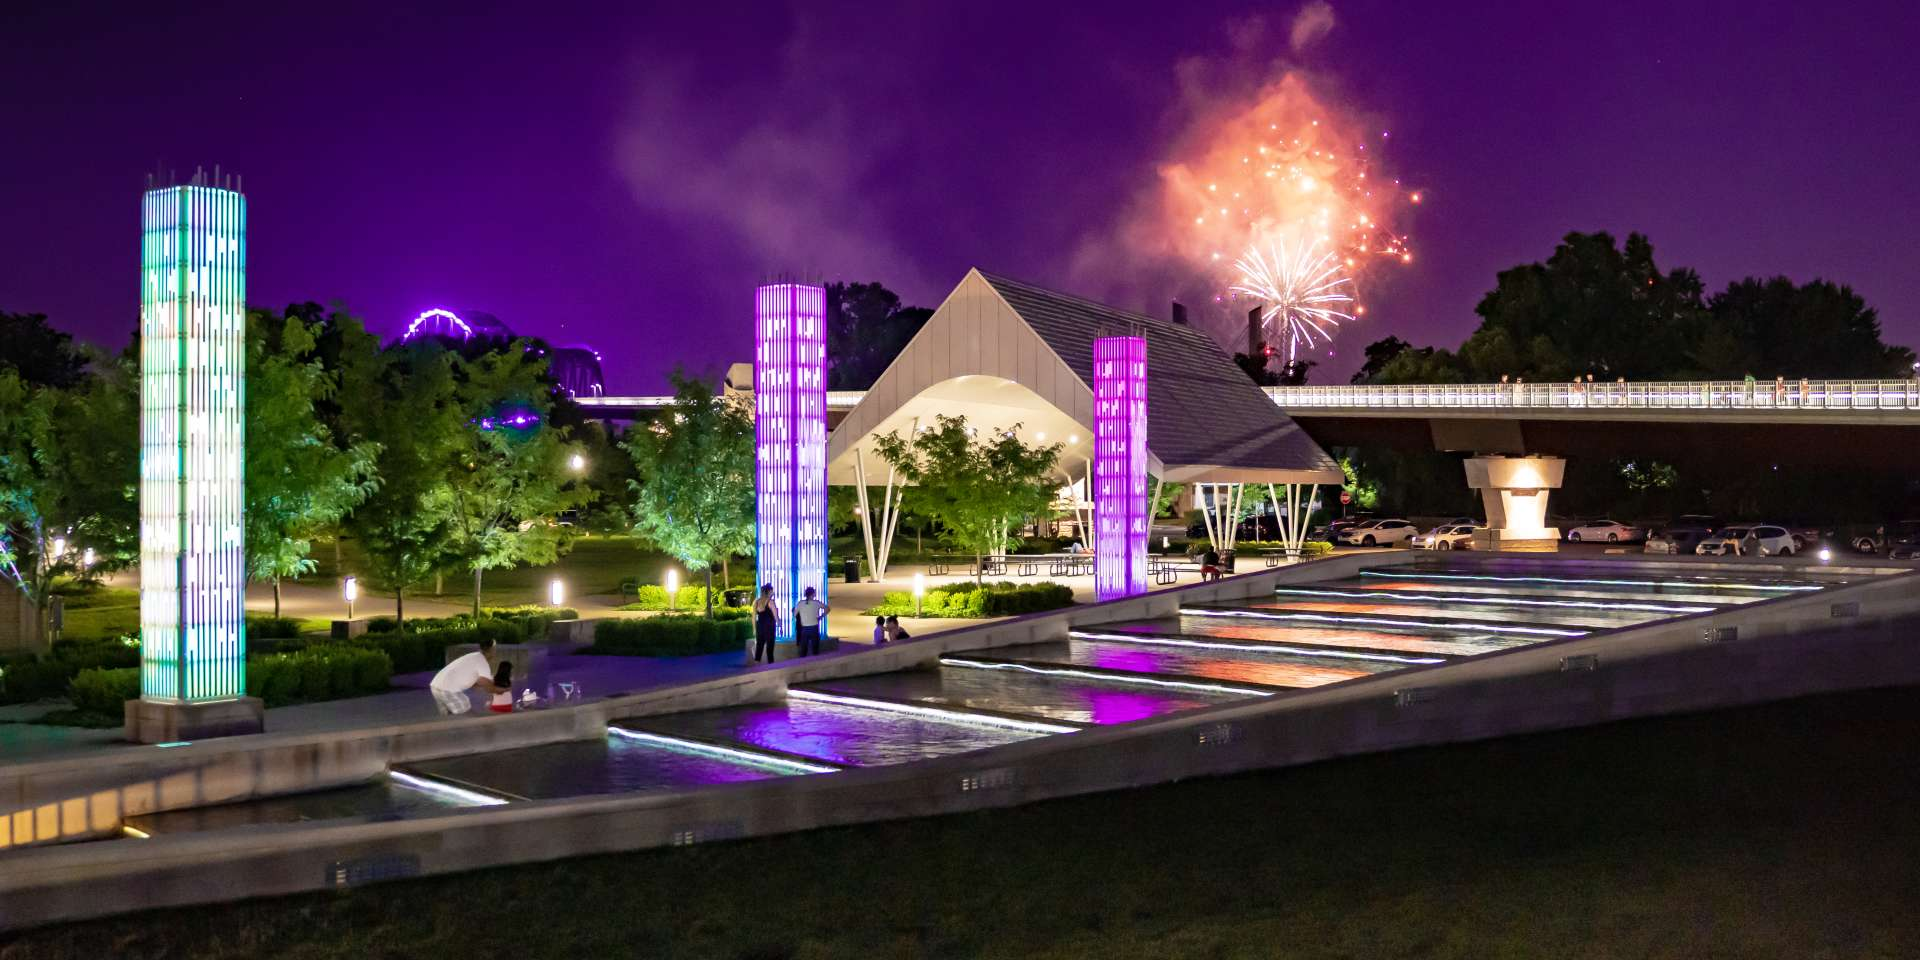 Art installations and fireworks in the night sky at Big Four Station Park in Jeffersonville